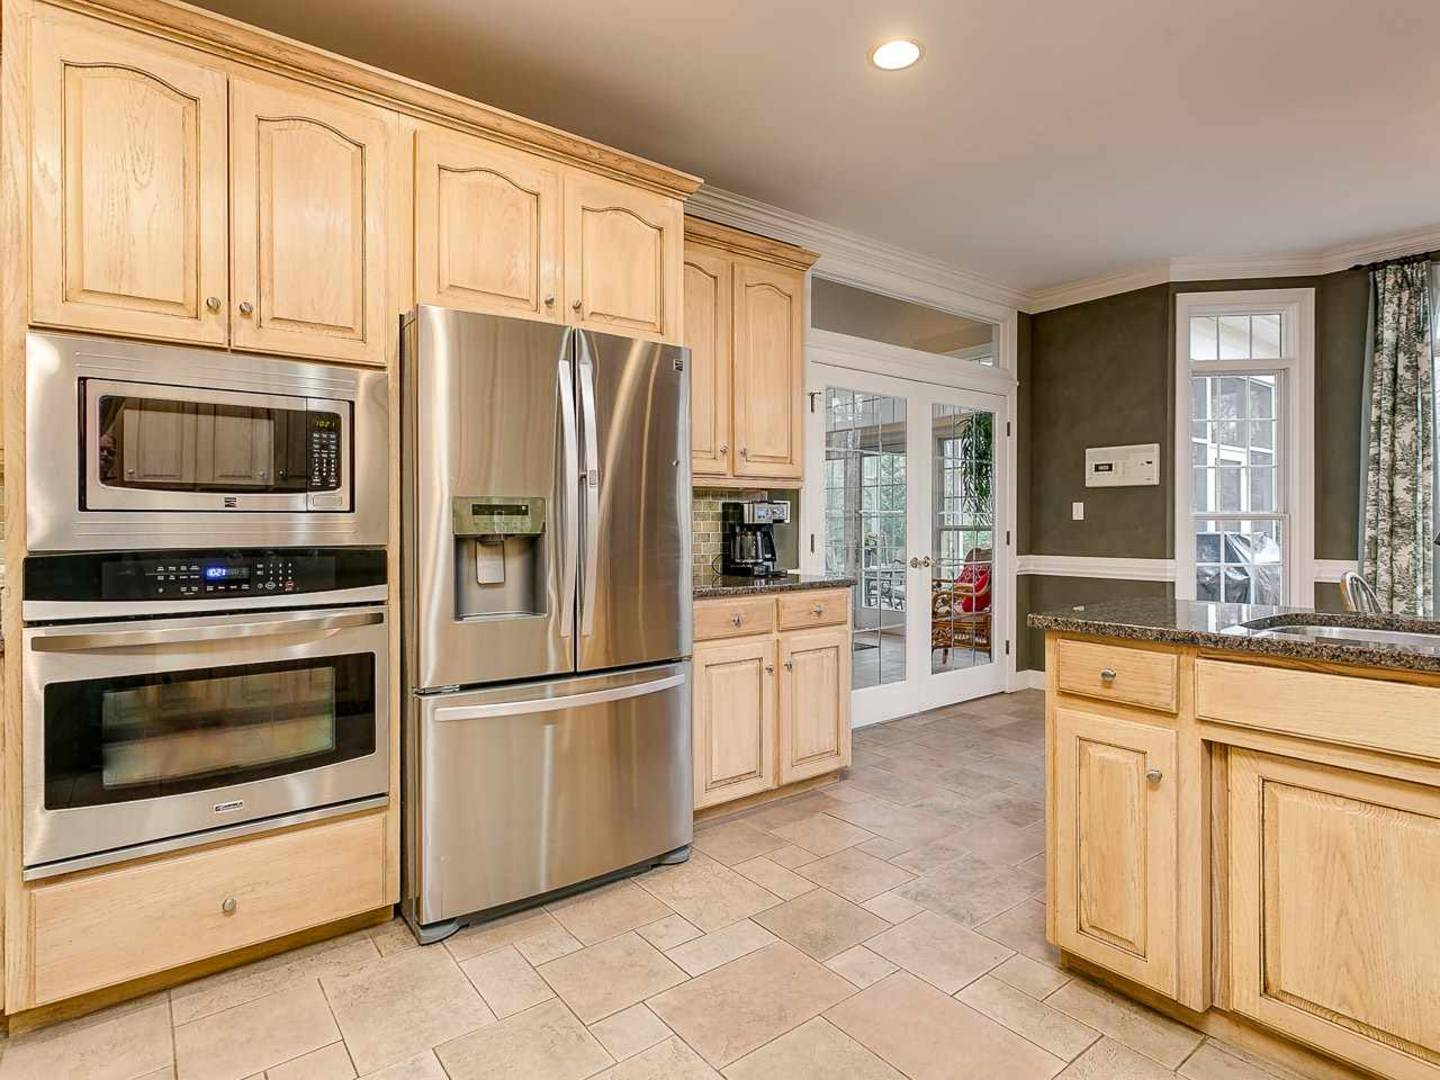 309 Whitfield Boiling Springs, SC 29316